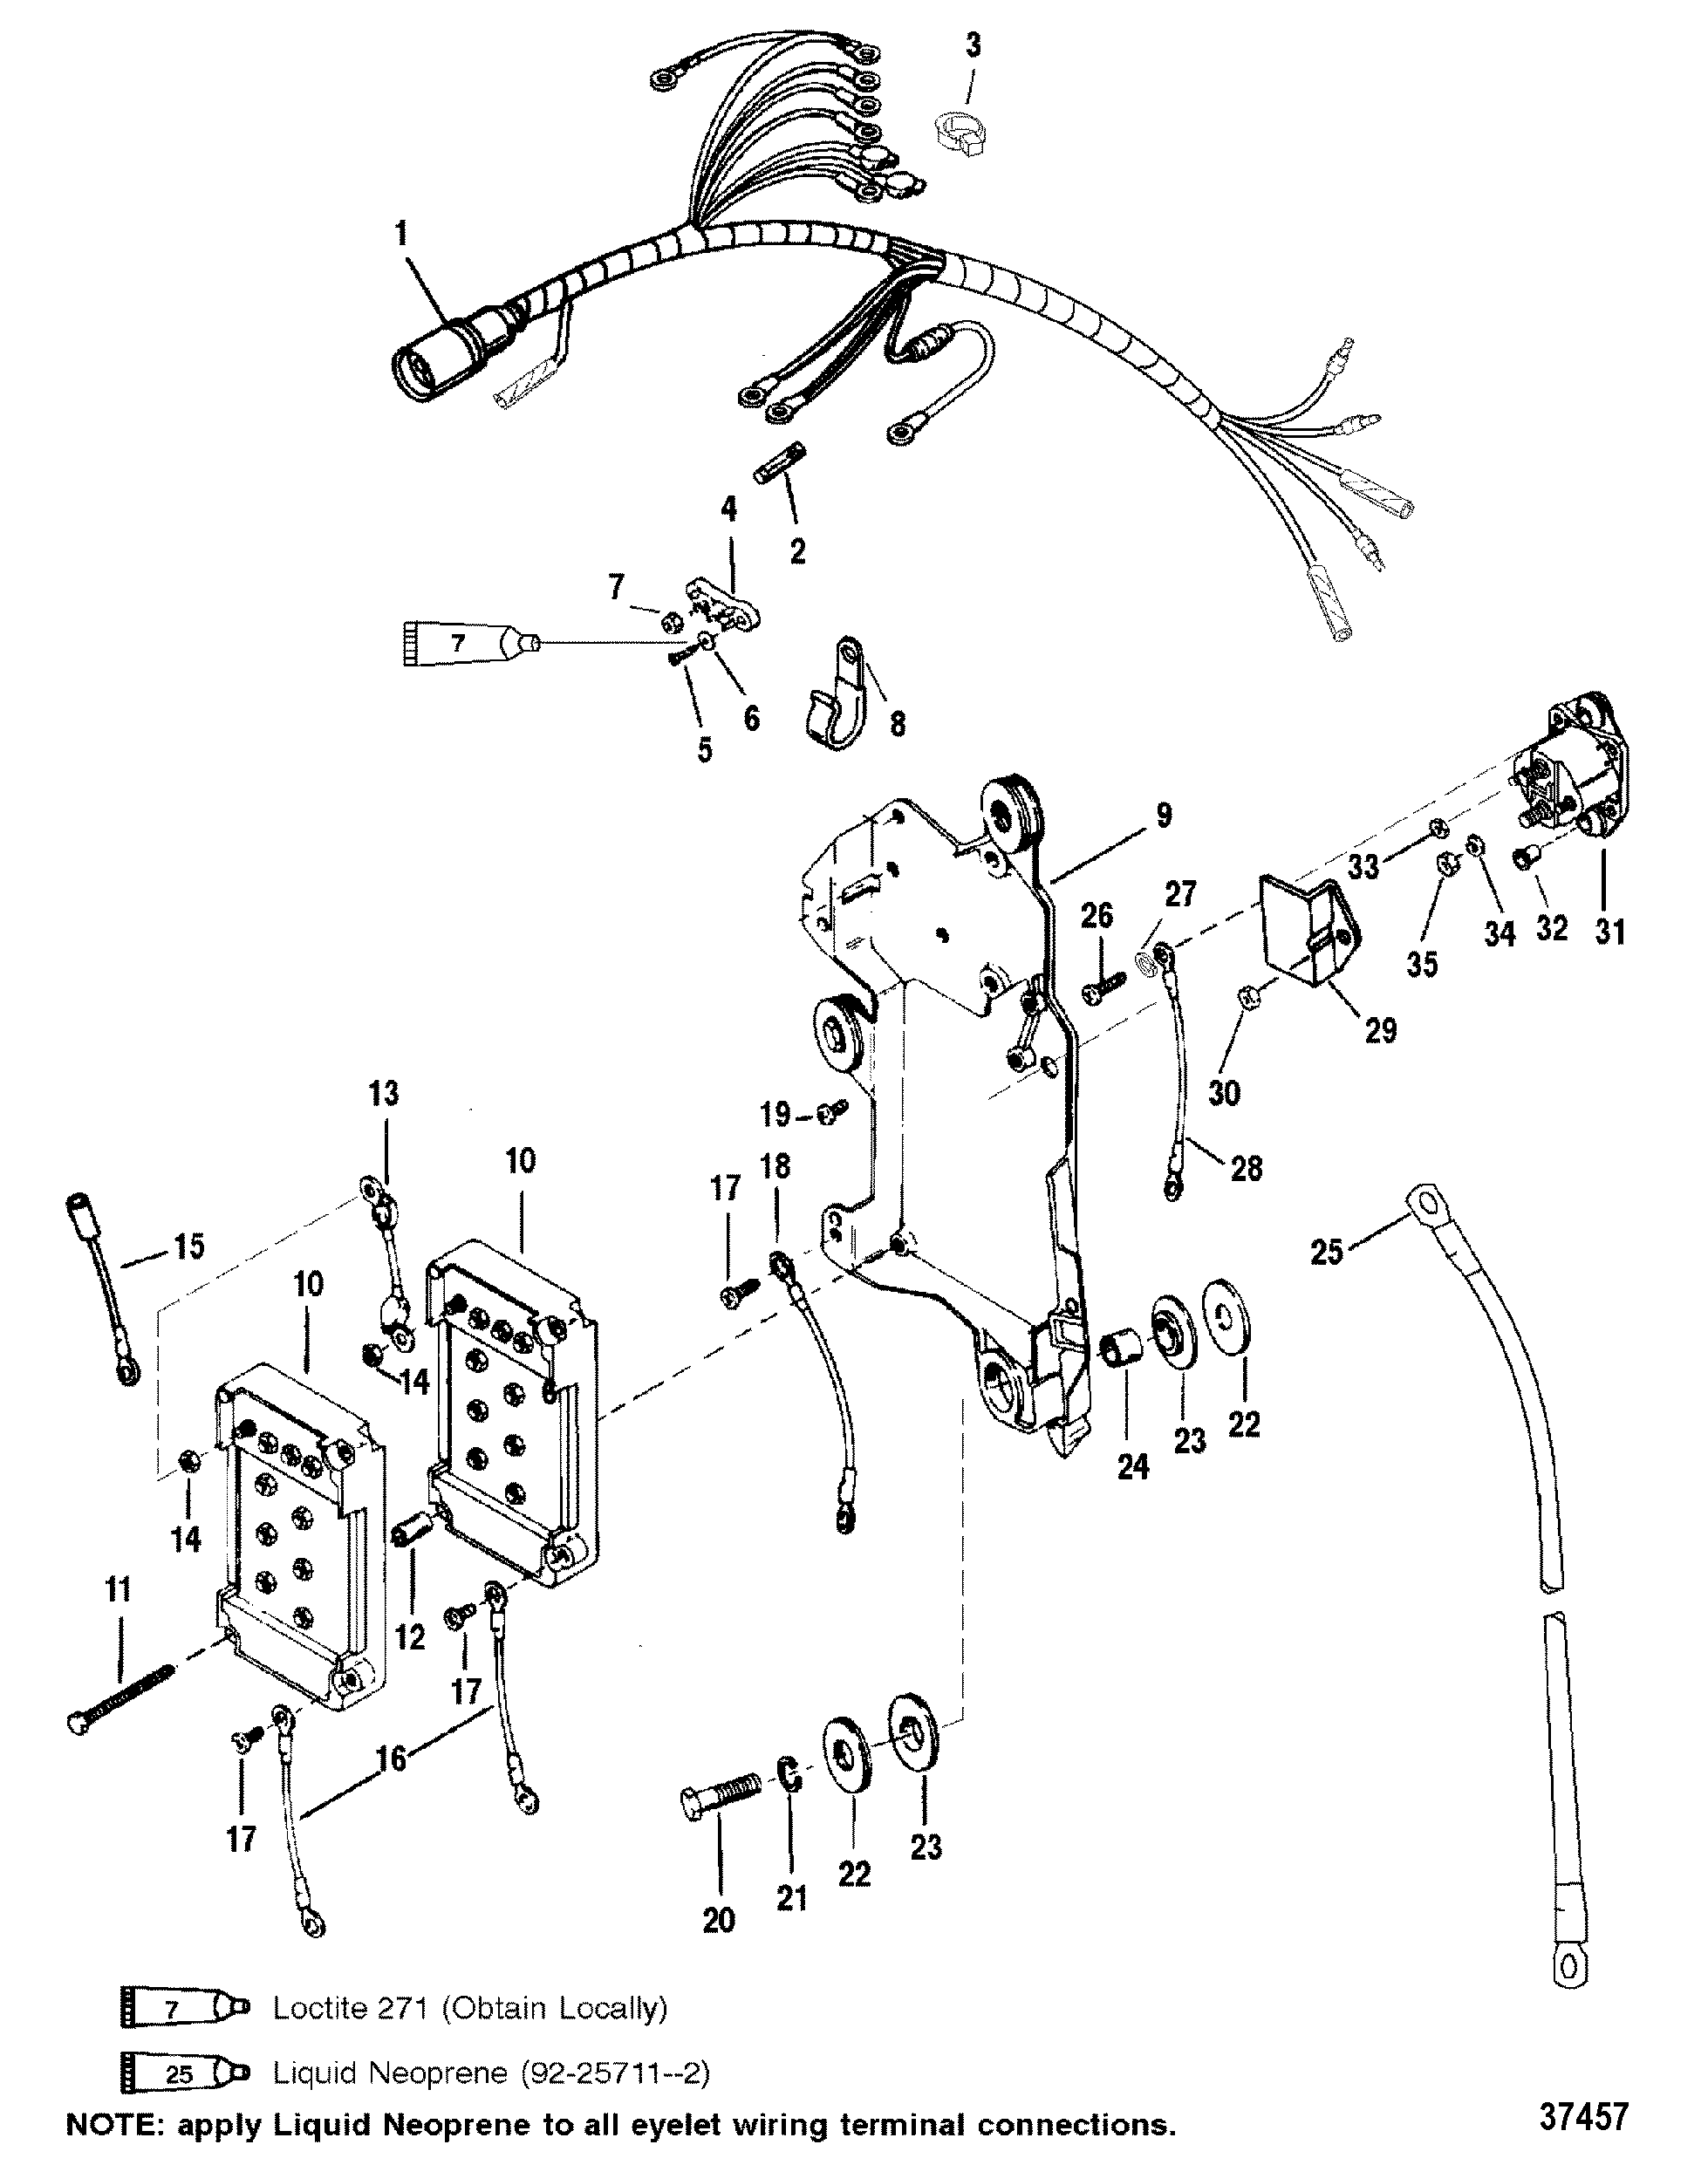 Mercury Solenoid Wiring List Of Schematic Circuit Diagram 65 Hp Outboard Motor Harness Starter For Mariner 150 175 200 Efi Rh Jamestowndistributors Com